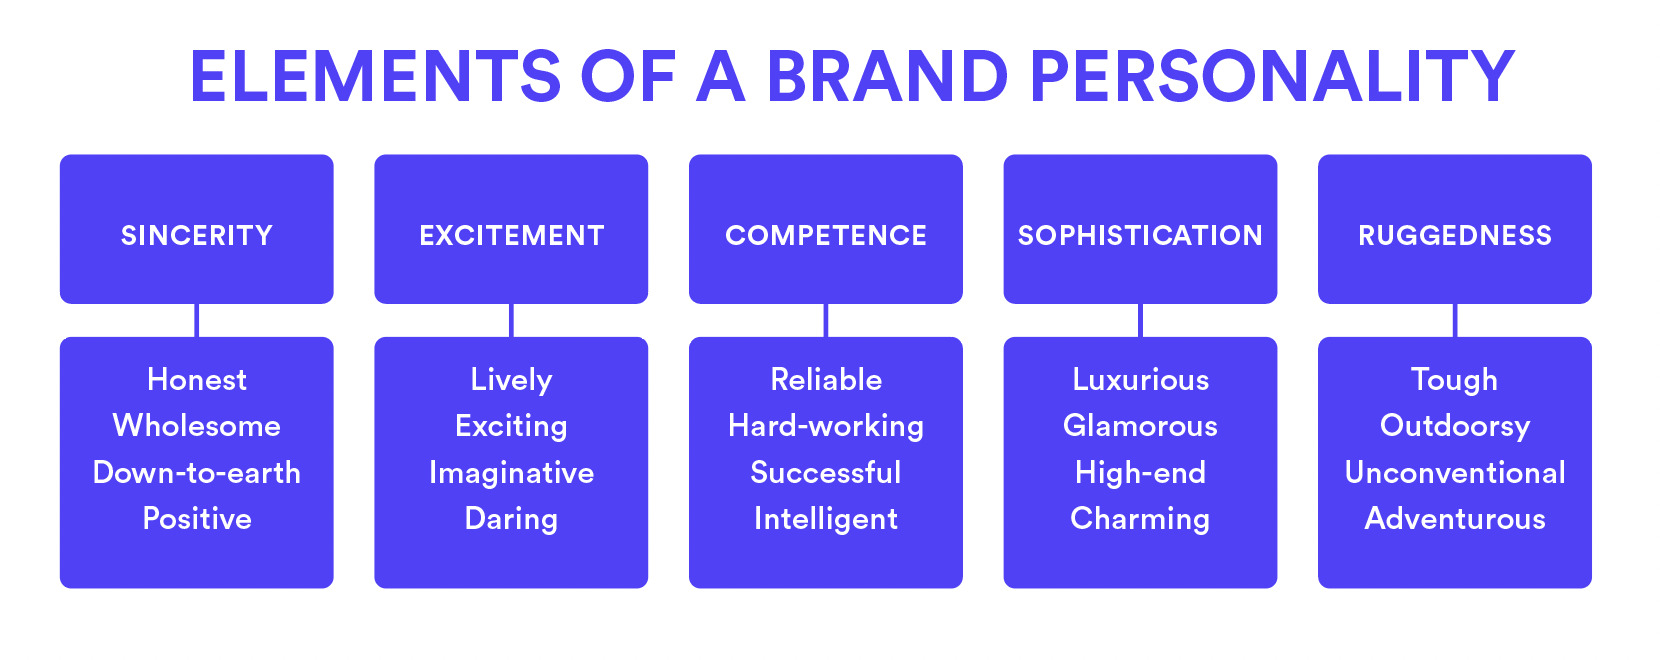 The elements of a brand personality